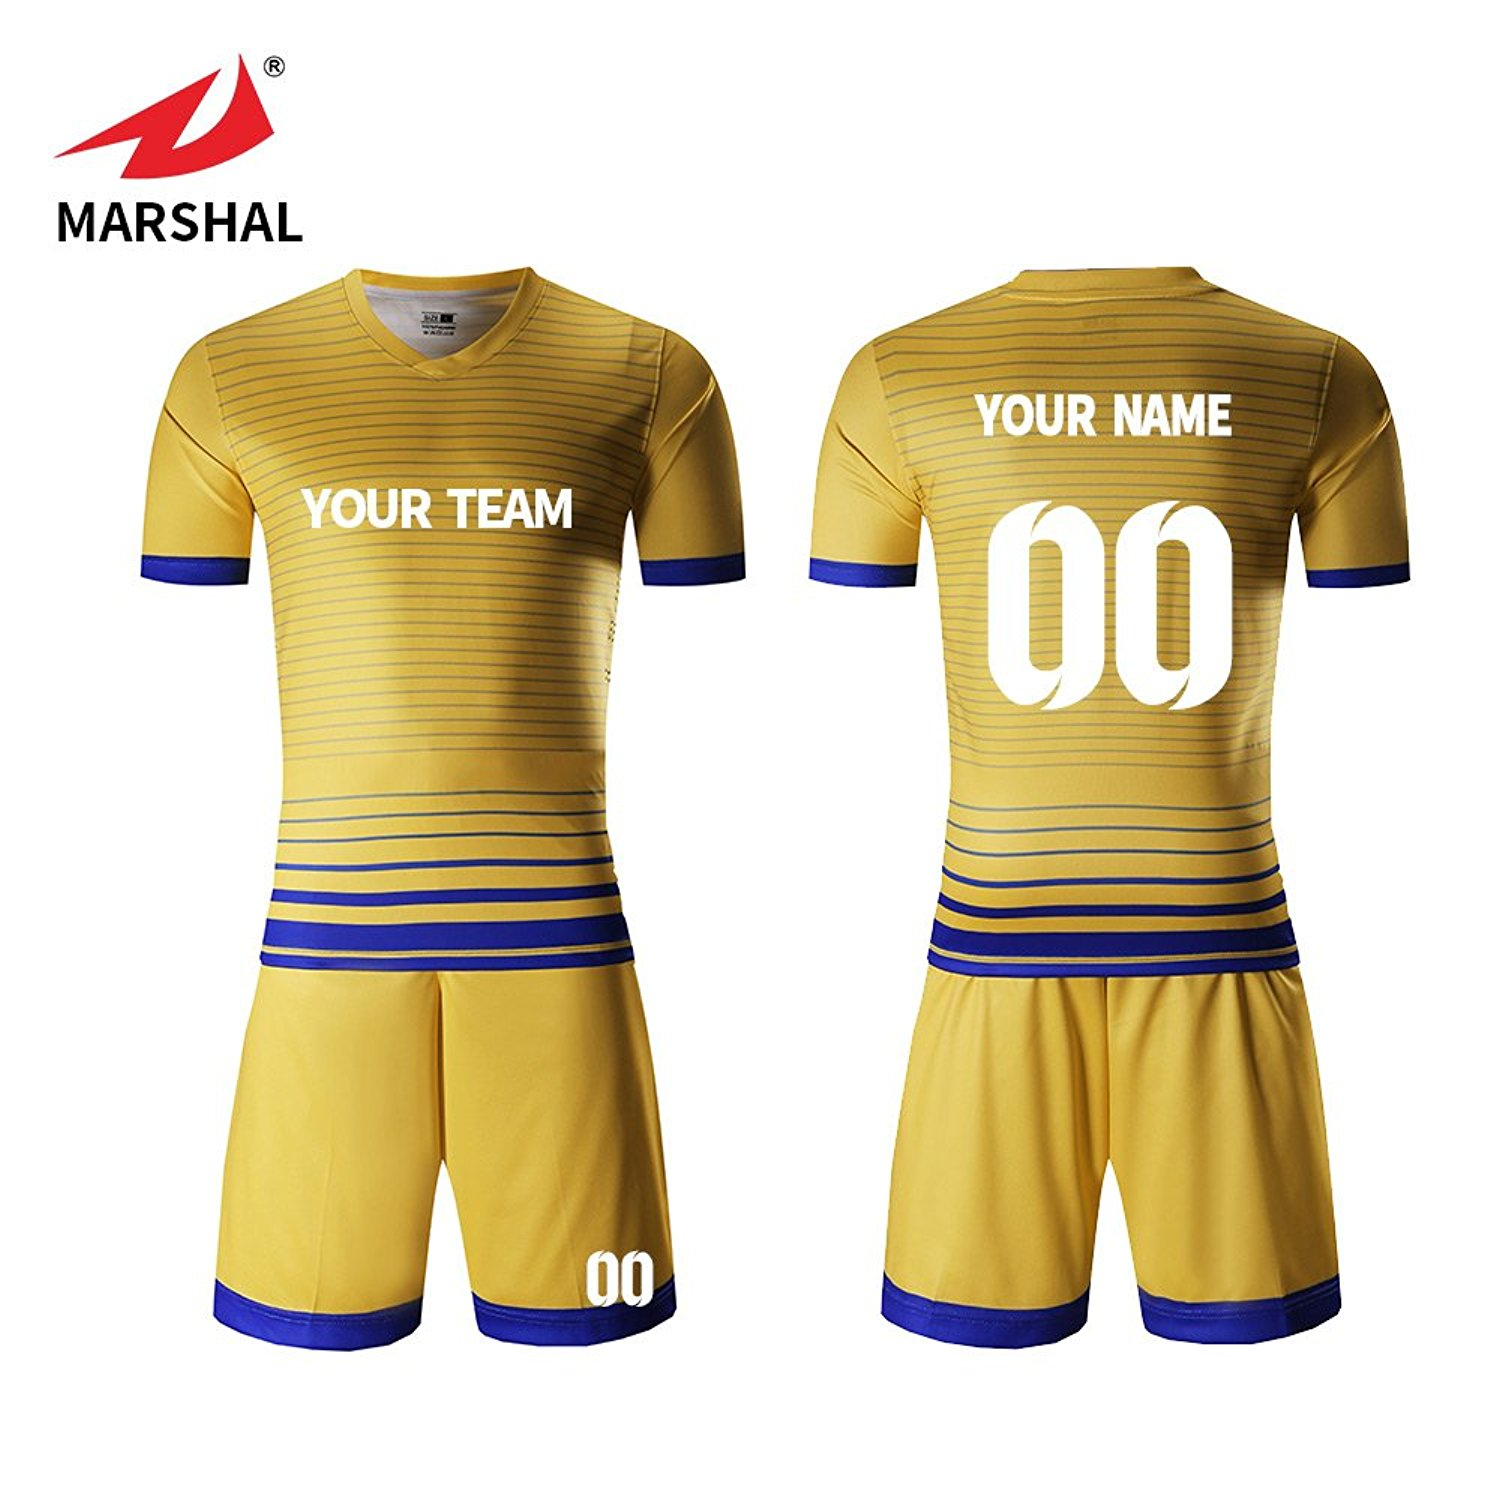 86c77daf4b1 Get Quotations · Marshal Jersey Personalized Soccer Jerseys Yellow Jersey  Quick Dry Sportwear Custom Soccer Jersey Set Custom Your